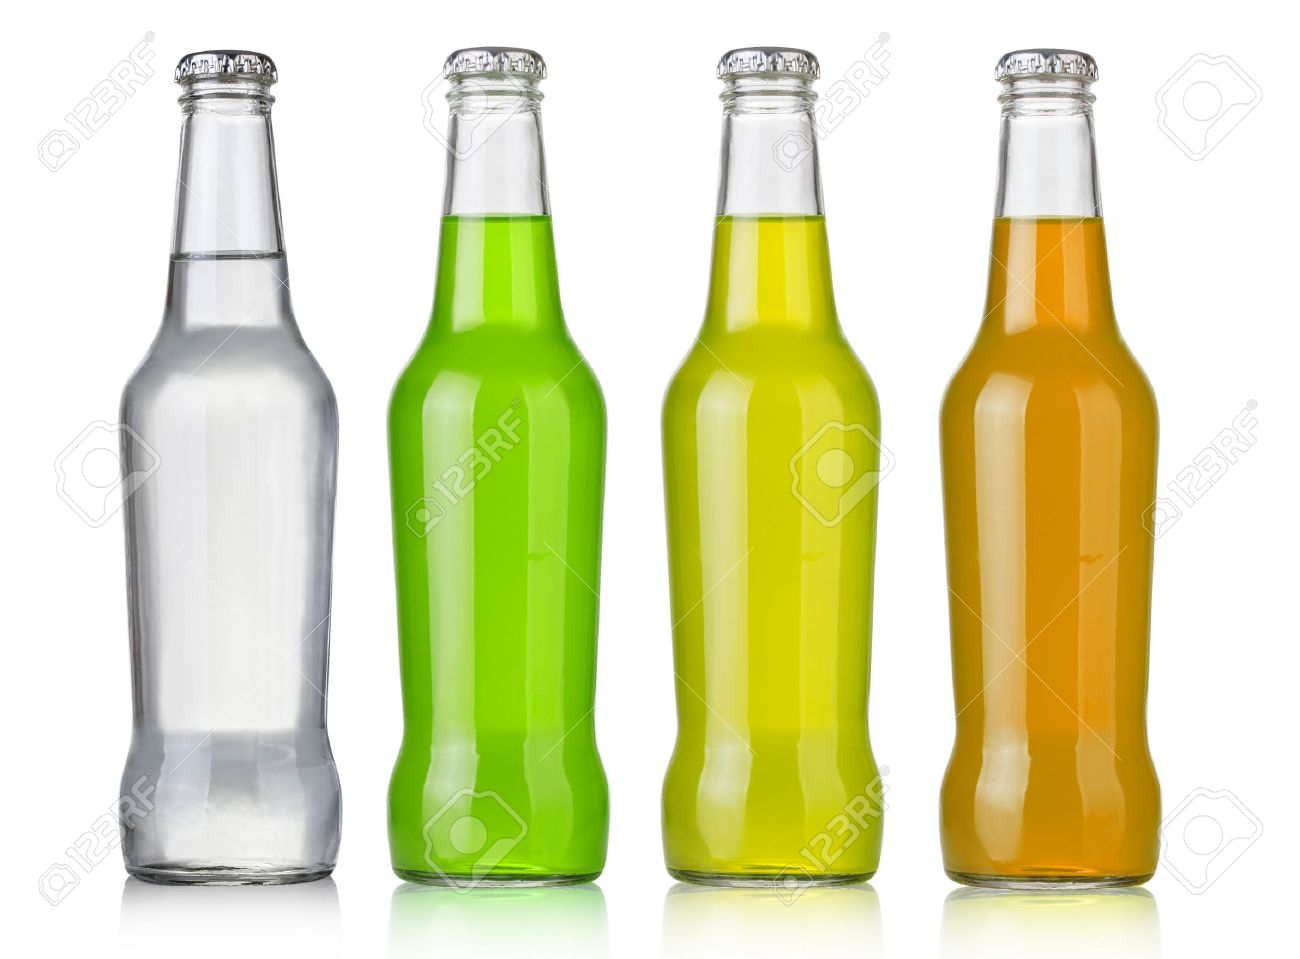 Four assorted soda bottles, non-alcoholic drinks - 45559374